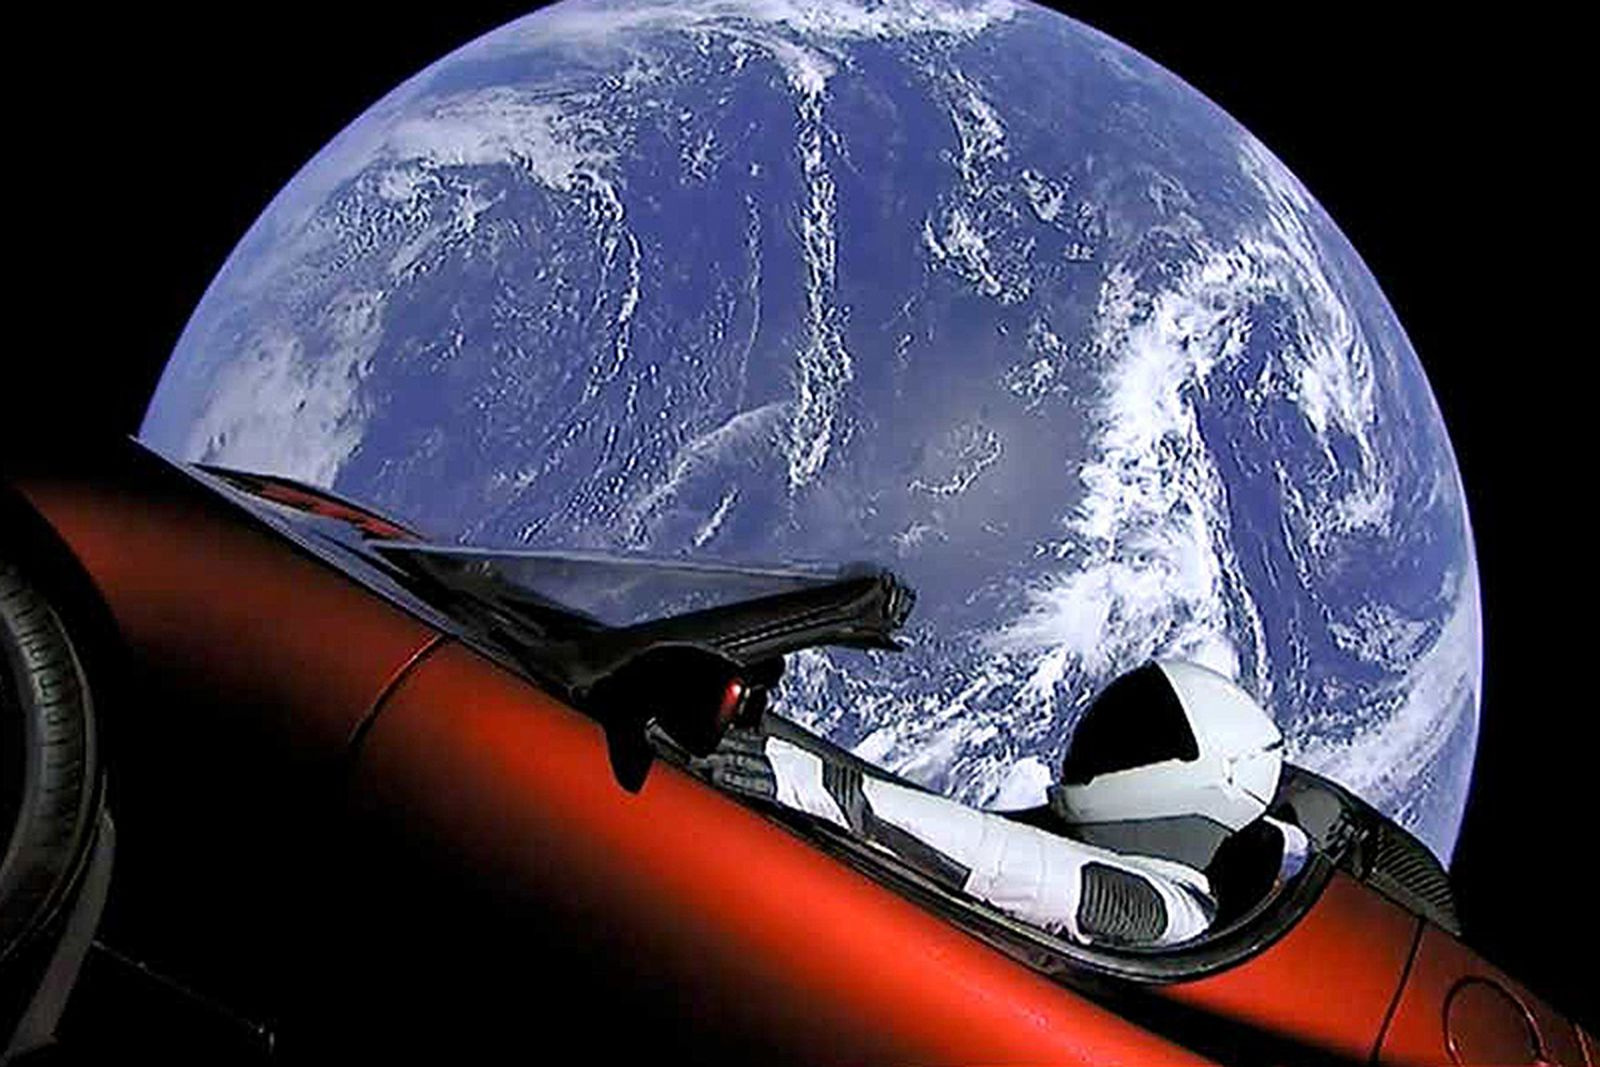 tesla starman roadster first trip around sun Elon Musk SpaceX